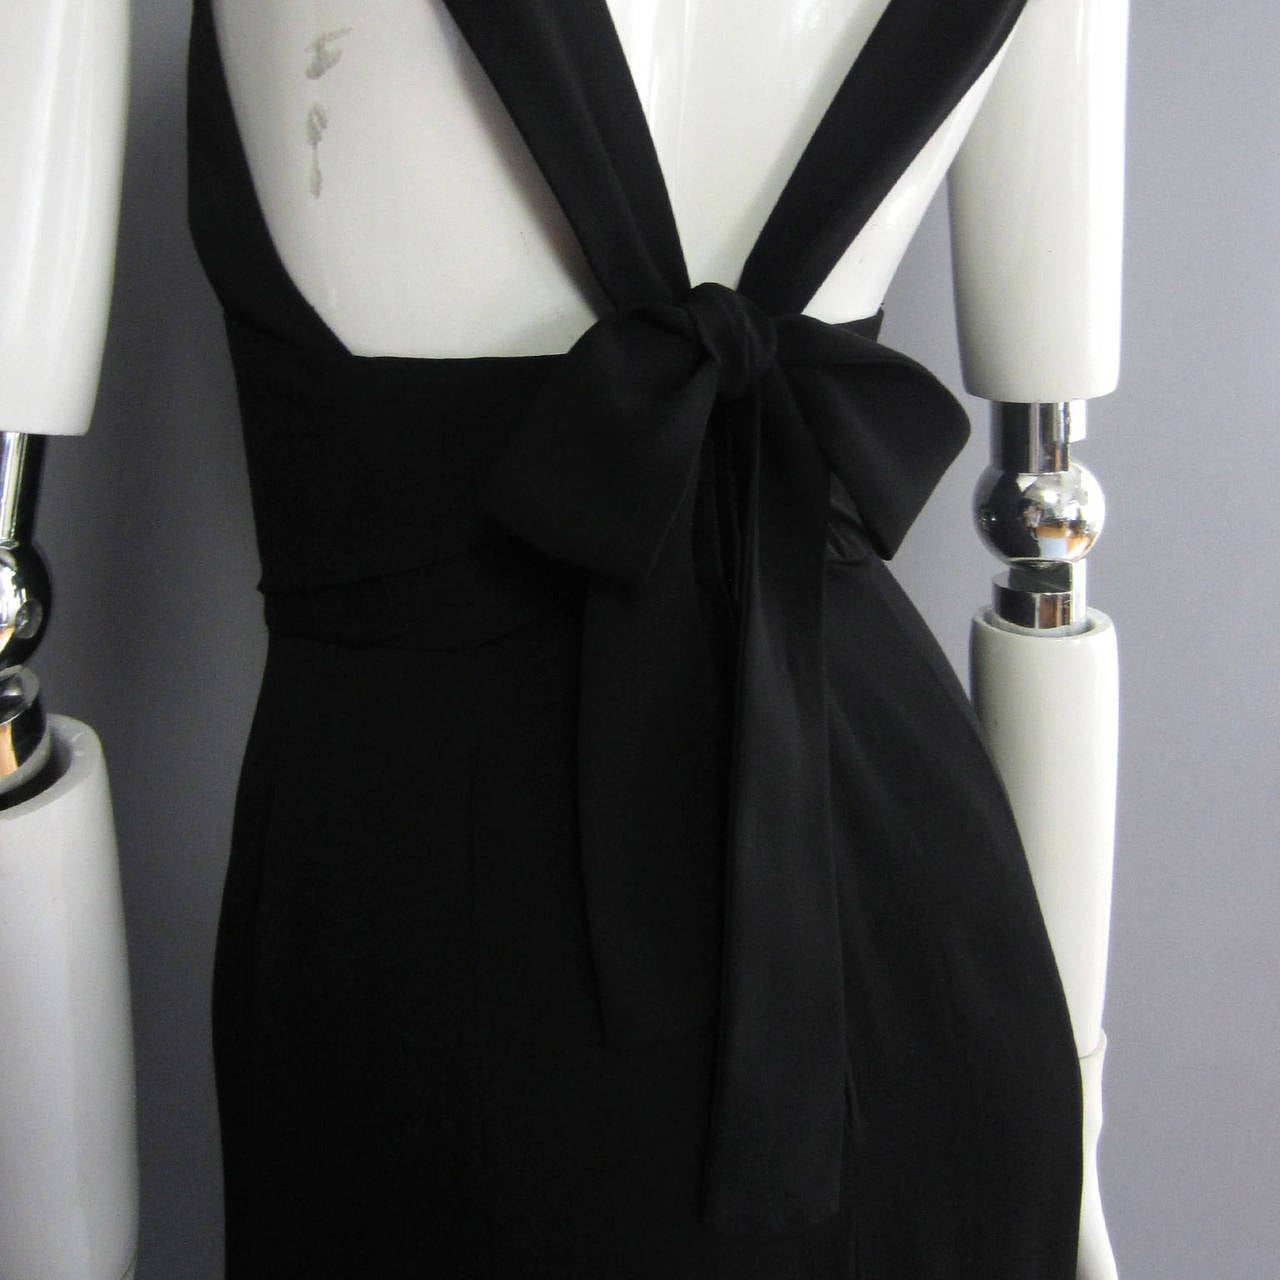 NORMAN NORELL Black Column Evening Gown with Back Tie Detail For Sale 3